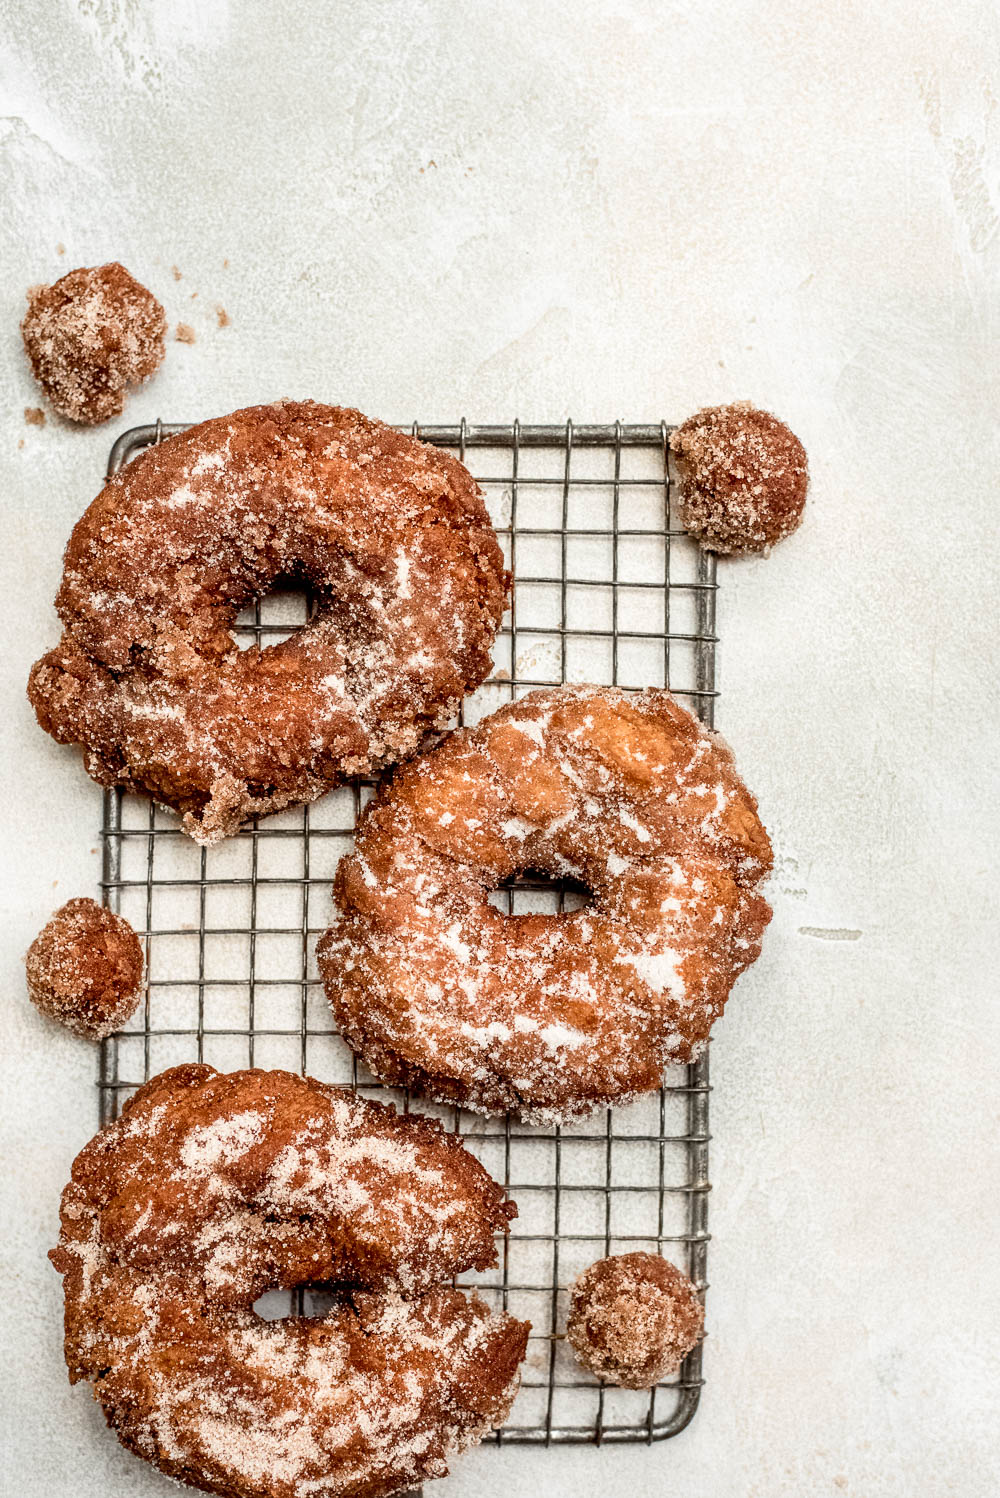 apple cider doughnuts on wire rack overhead